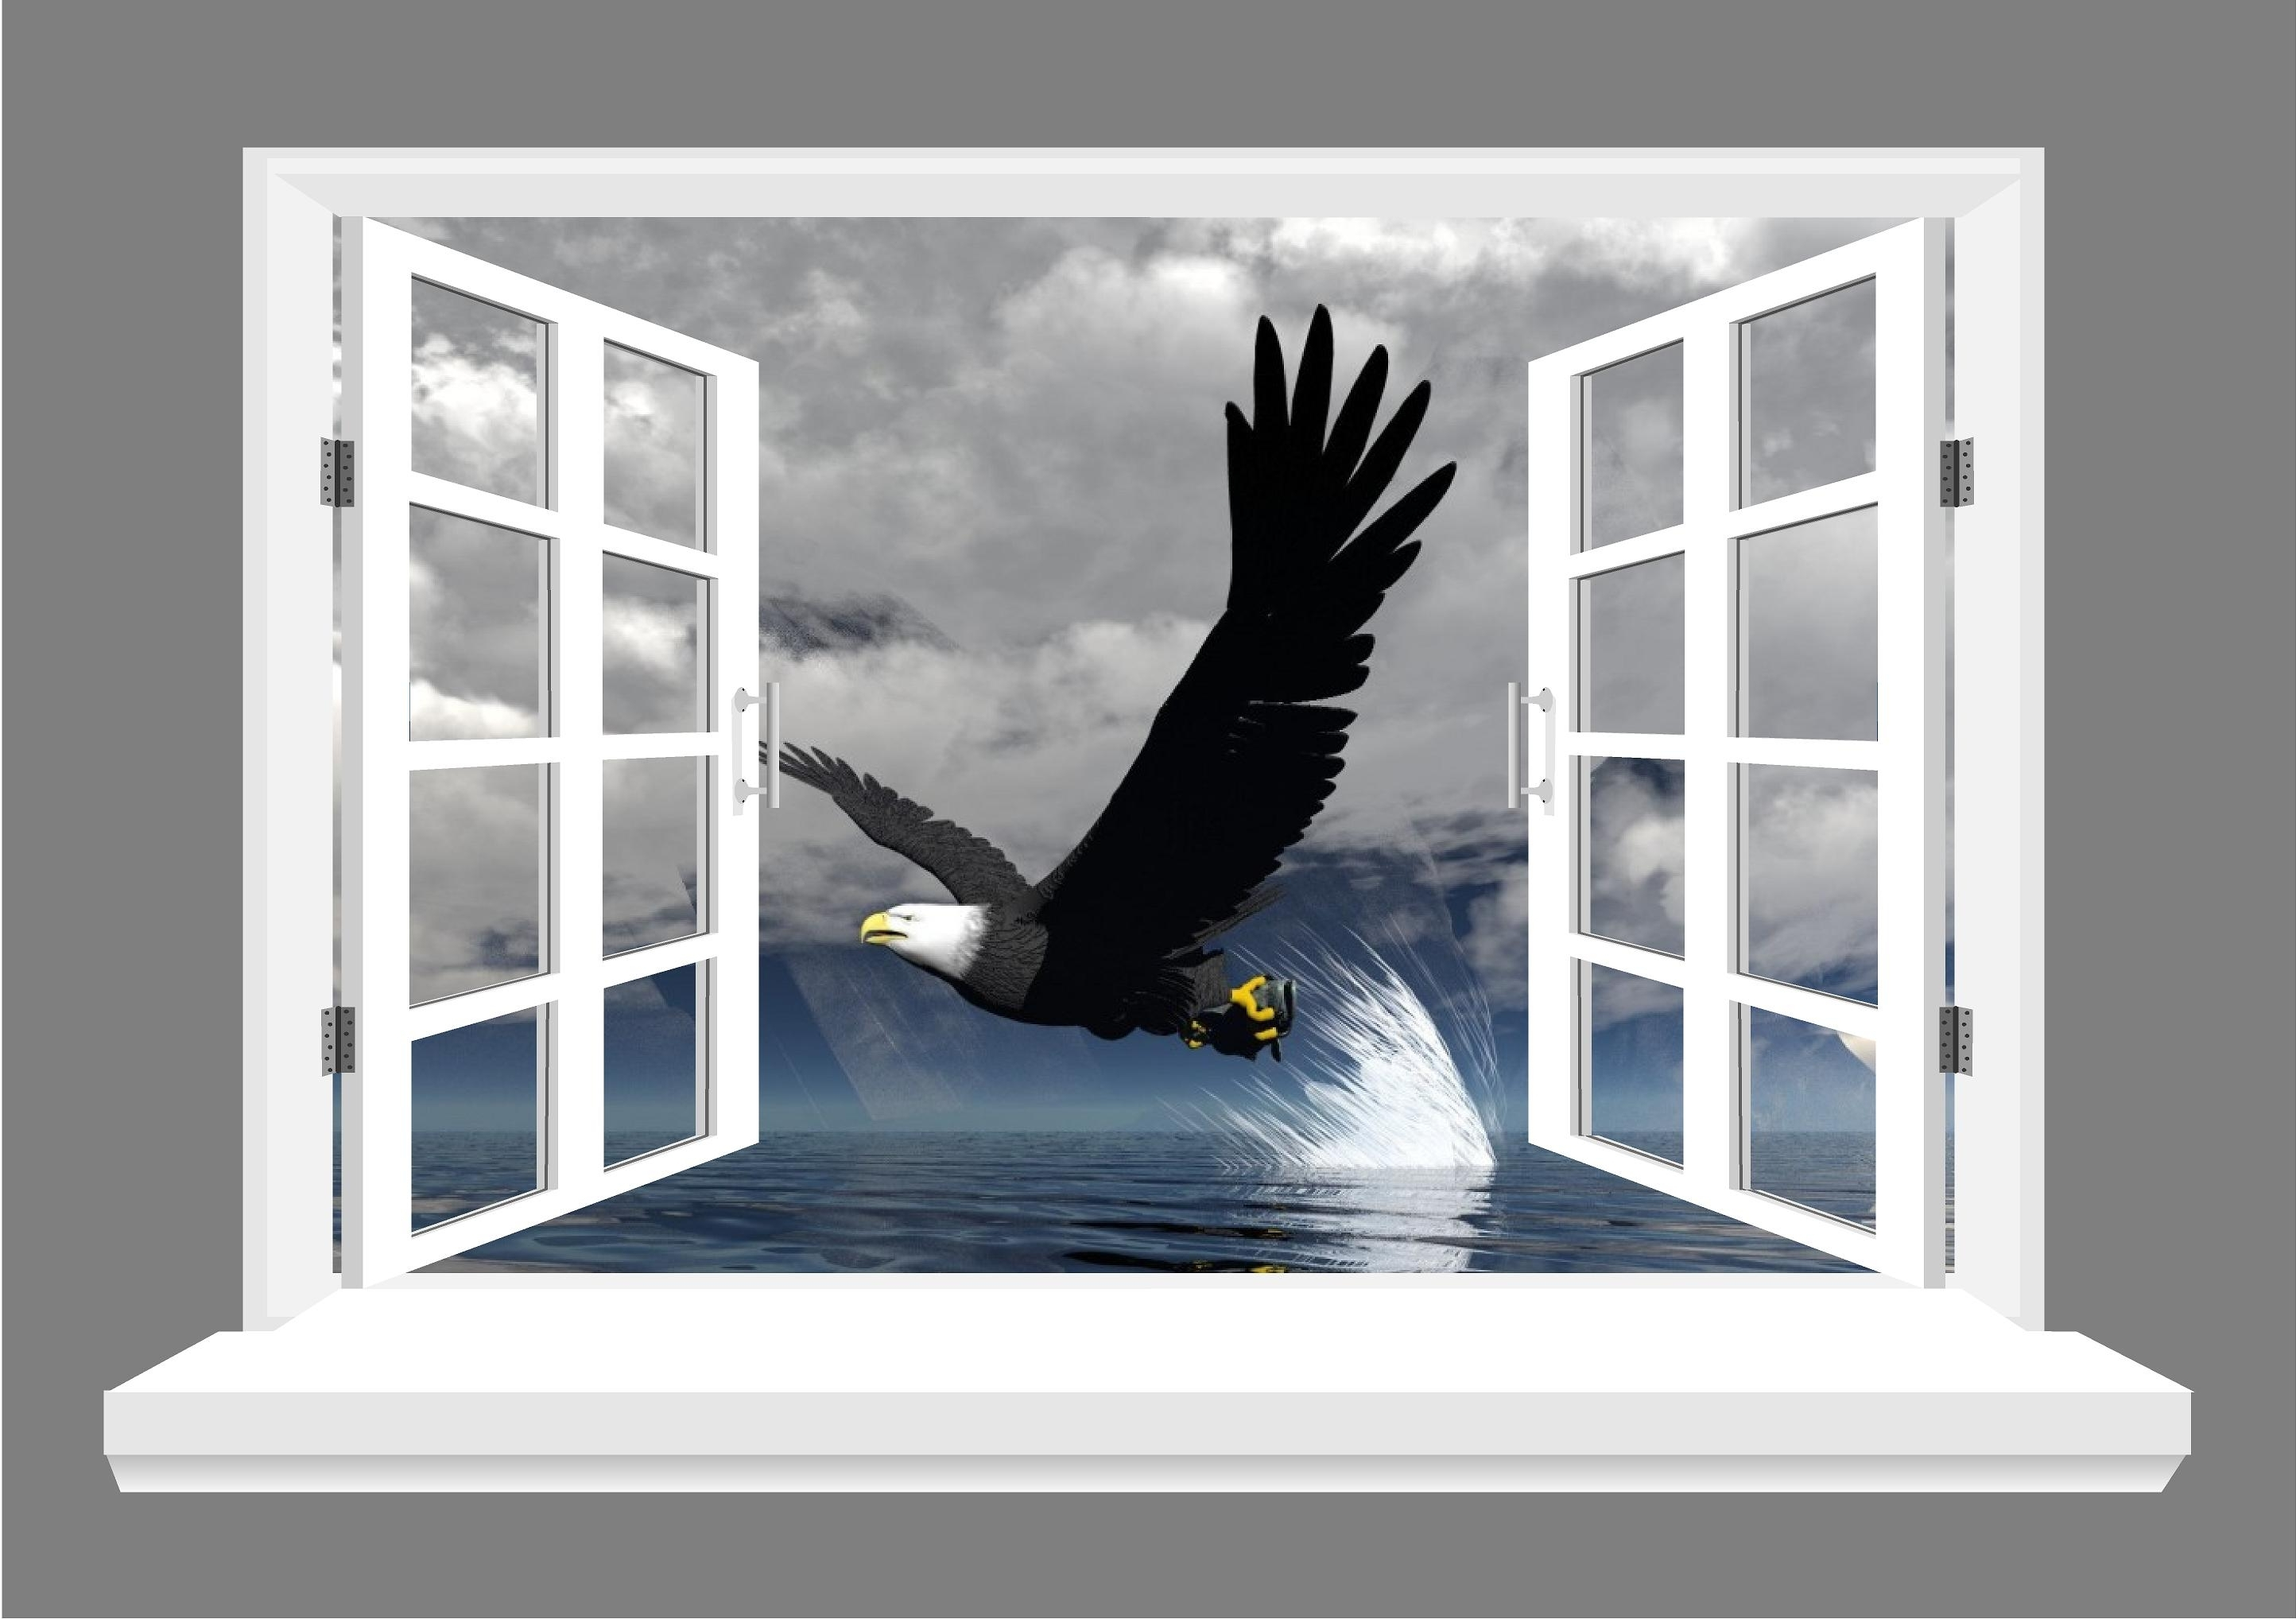 Vintage 3D Wall Art Regarding Most Recent Wall Art Design Ideas: Eagly Flying 3D Wall Art Bird Windows (View 10 of 15)